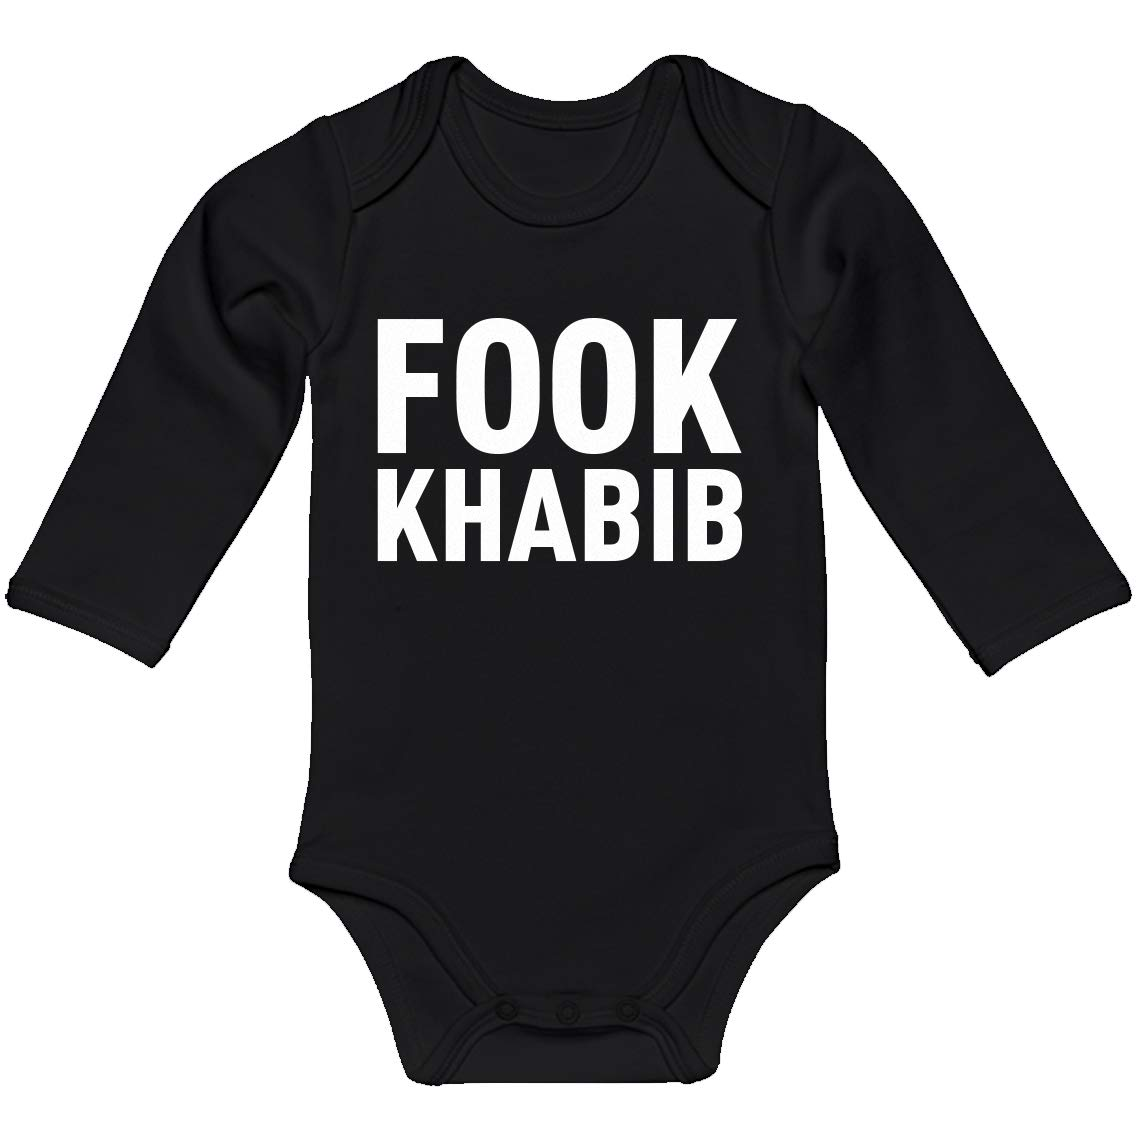 Indica Plateau Baby Onesie Fook Khabib 100/% Cotton Long Sleeve Infant Bodysuit